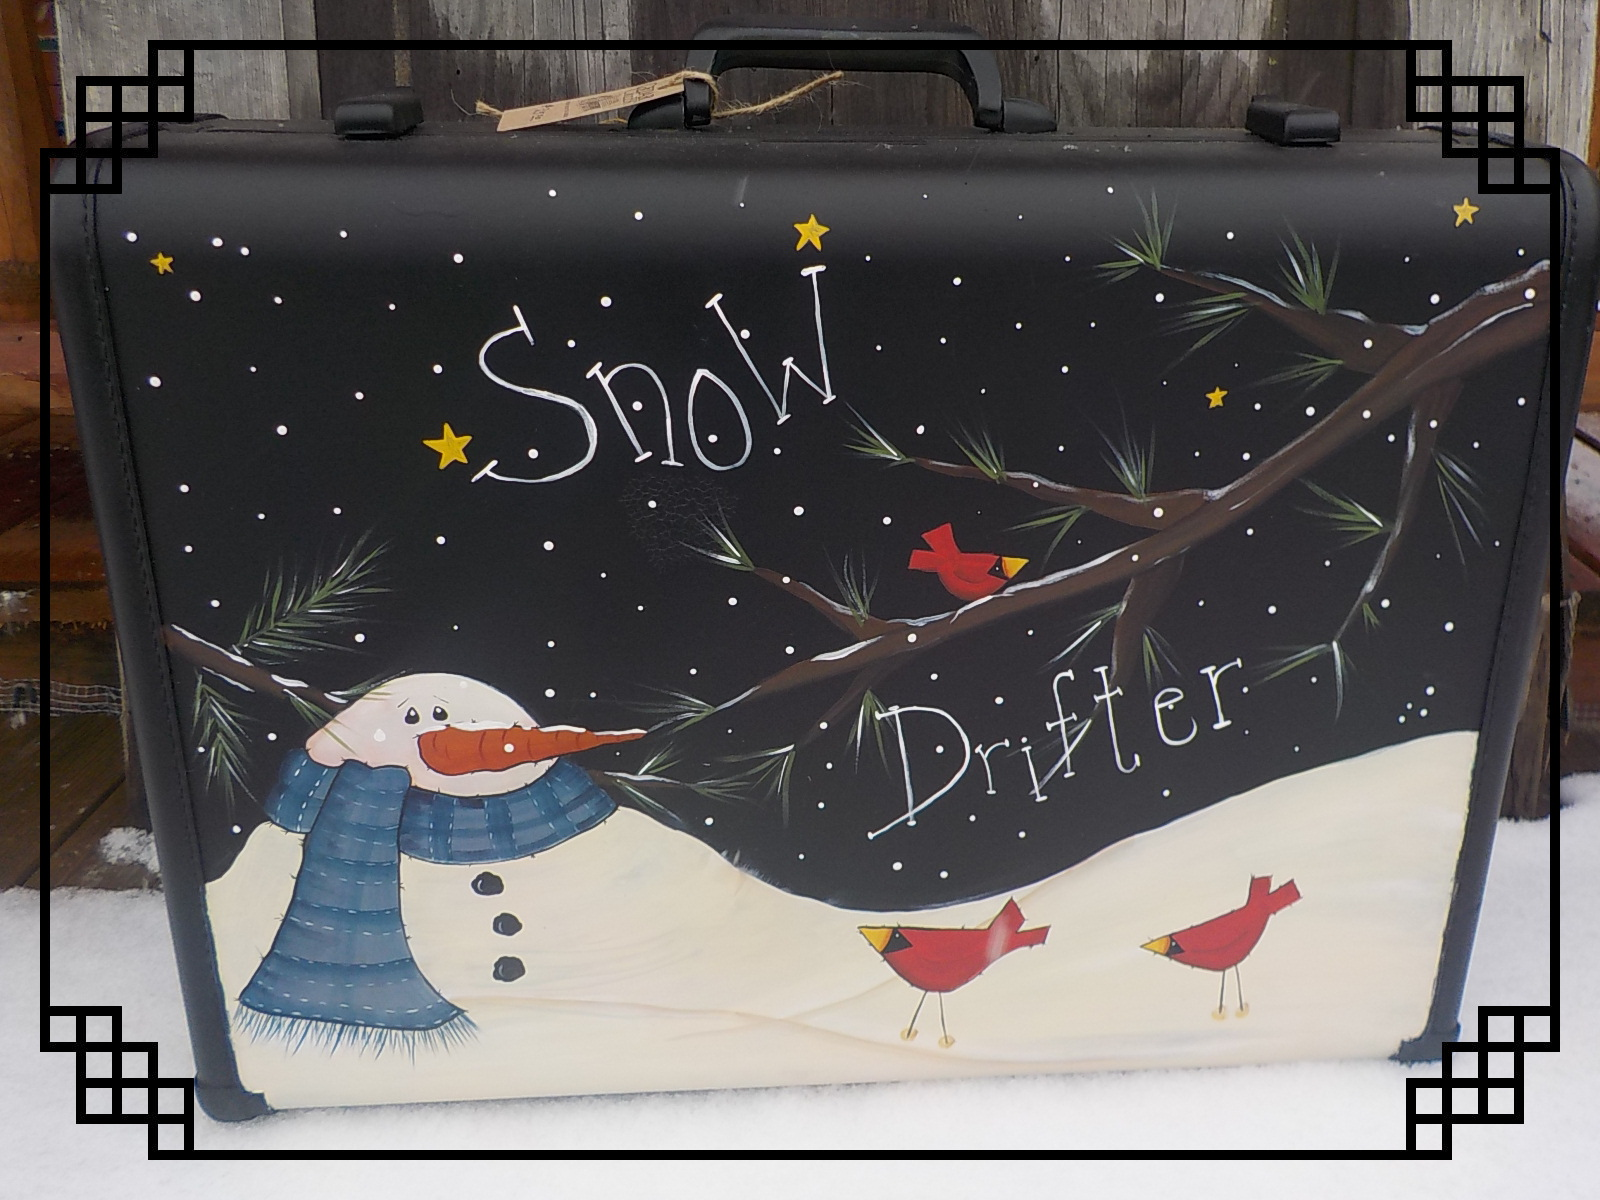 Suitcase_Snow_Painting.JPG